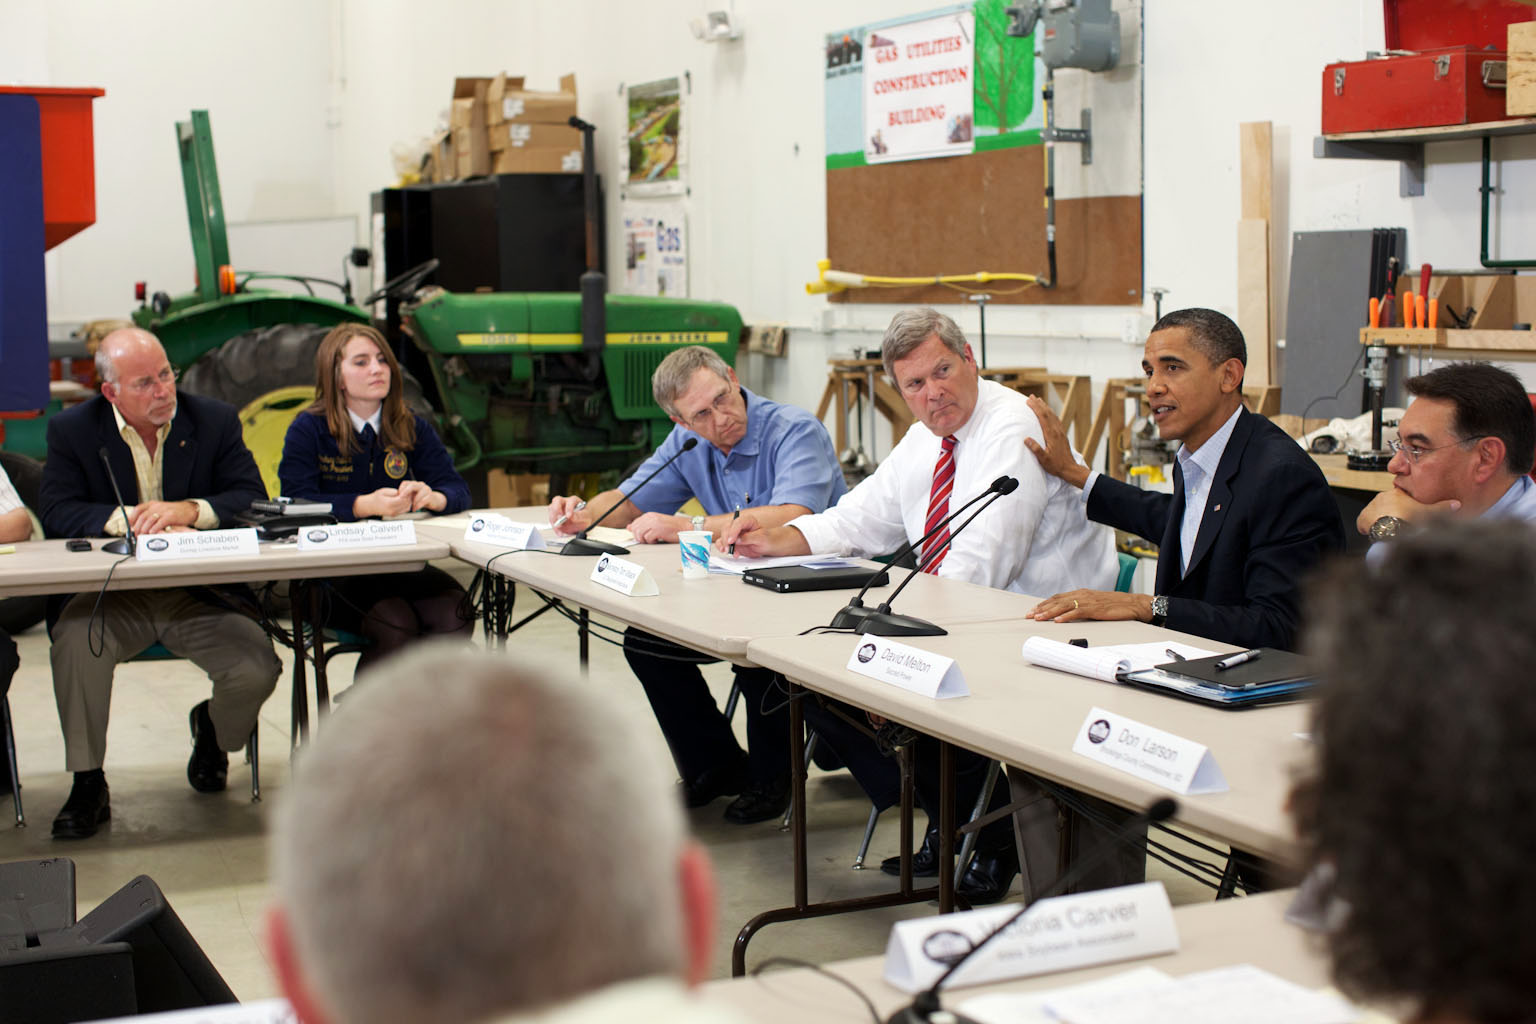 President Obama and Agriculture Secretary Vilsack